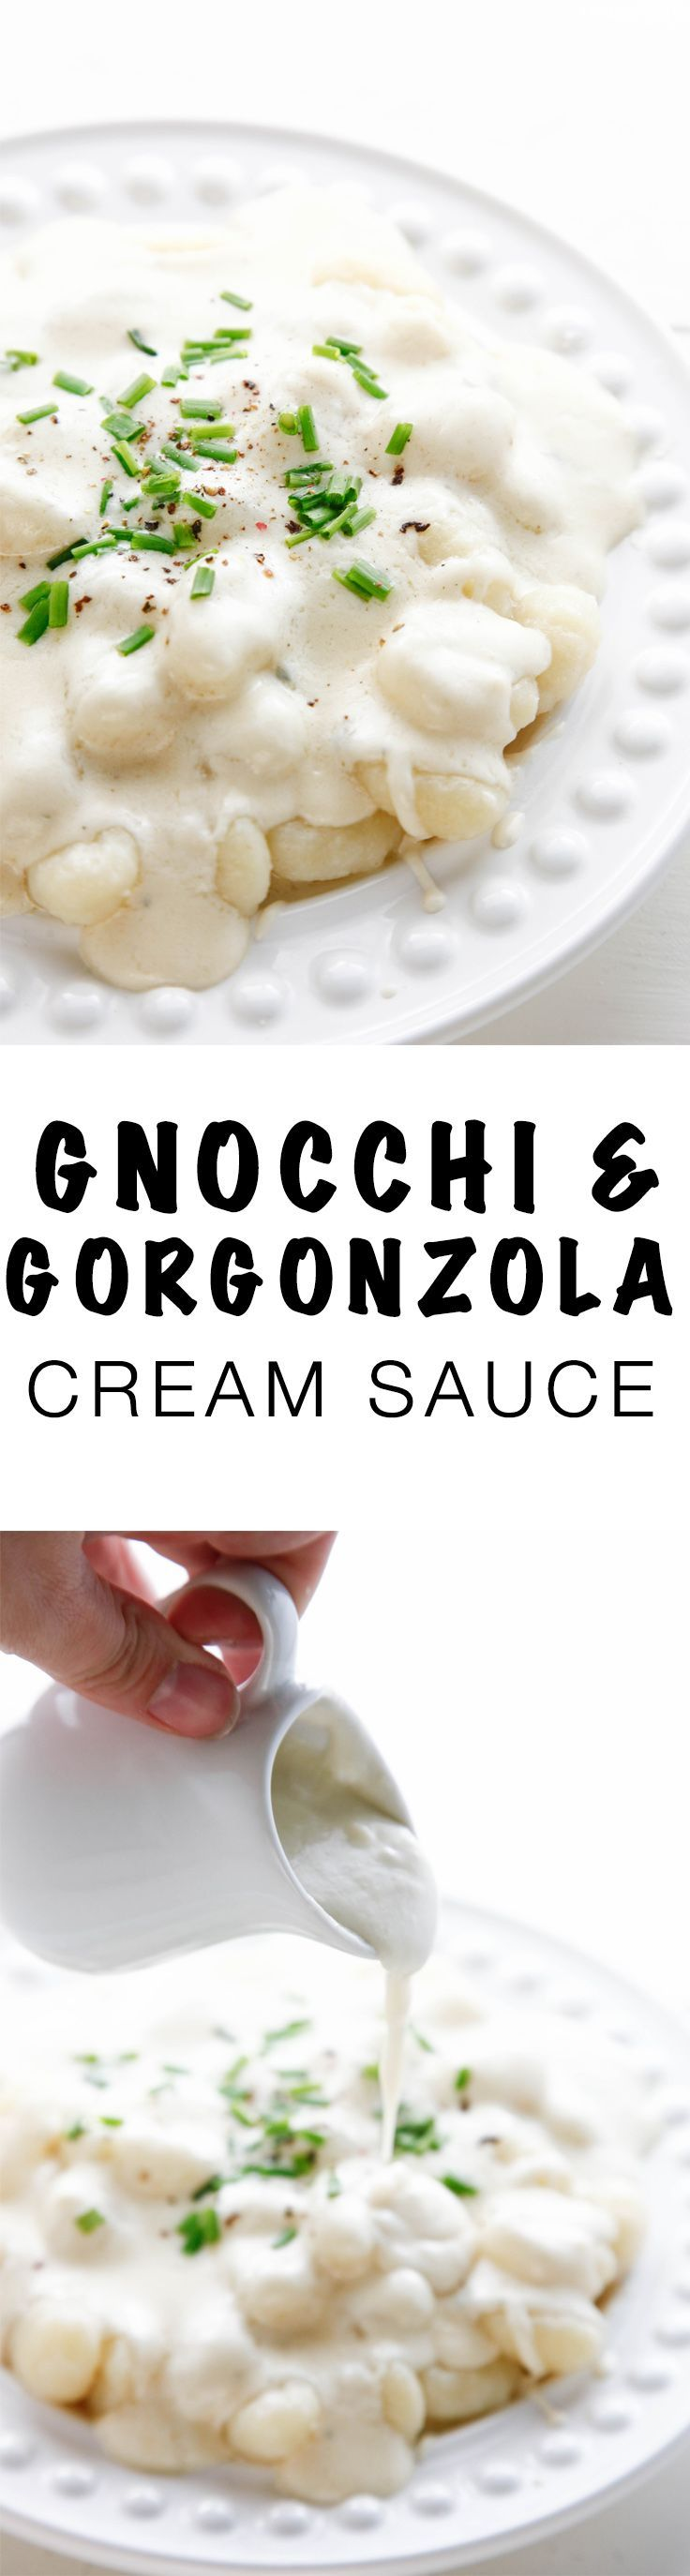 Gnocchi with Gorgonzola Cream Sauce is the perfect pasta dinner. Enjoy the savory creamy dish on date night! via @thebrooklyncook